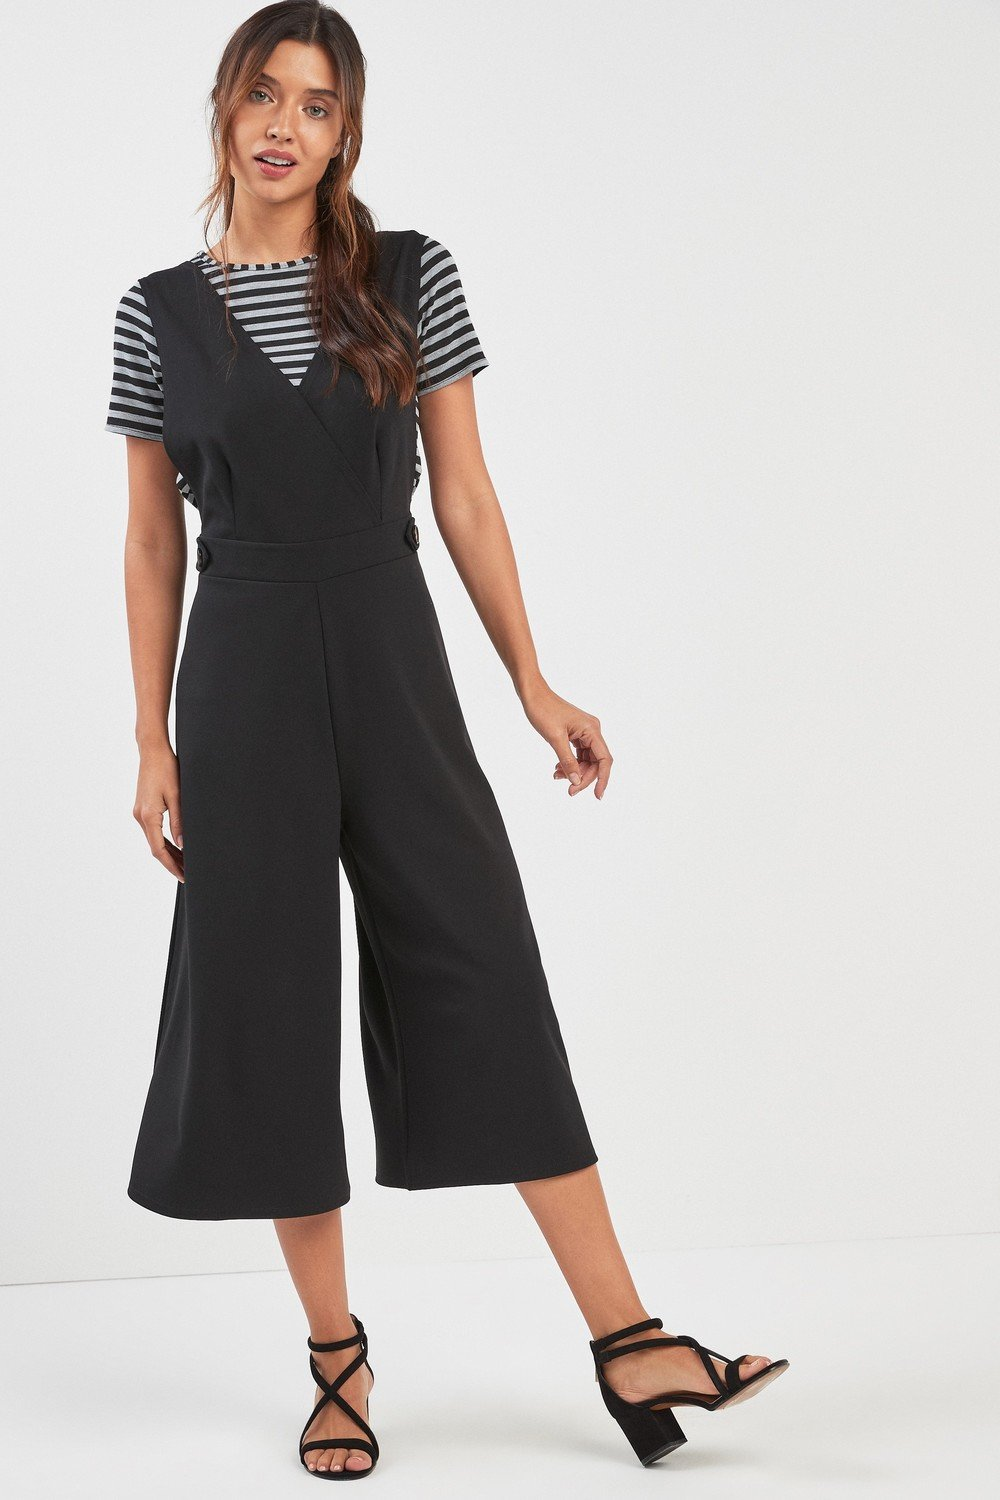 4dcdcfd5ddcbdd Next 2-In-1 Culotte Jumpsuit And Stripe T-Shirt Online